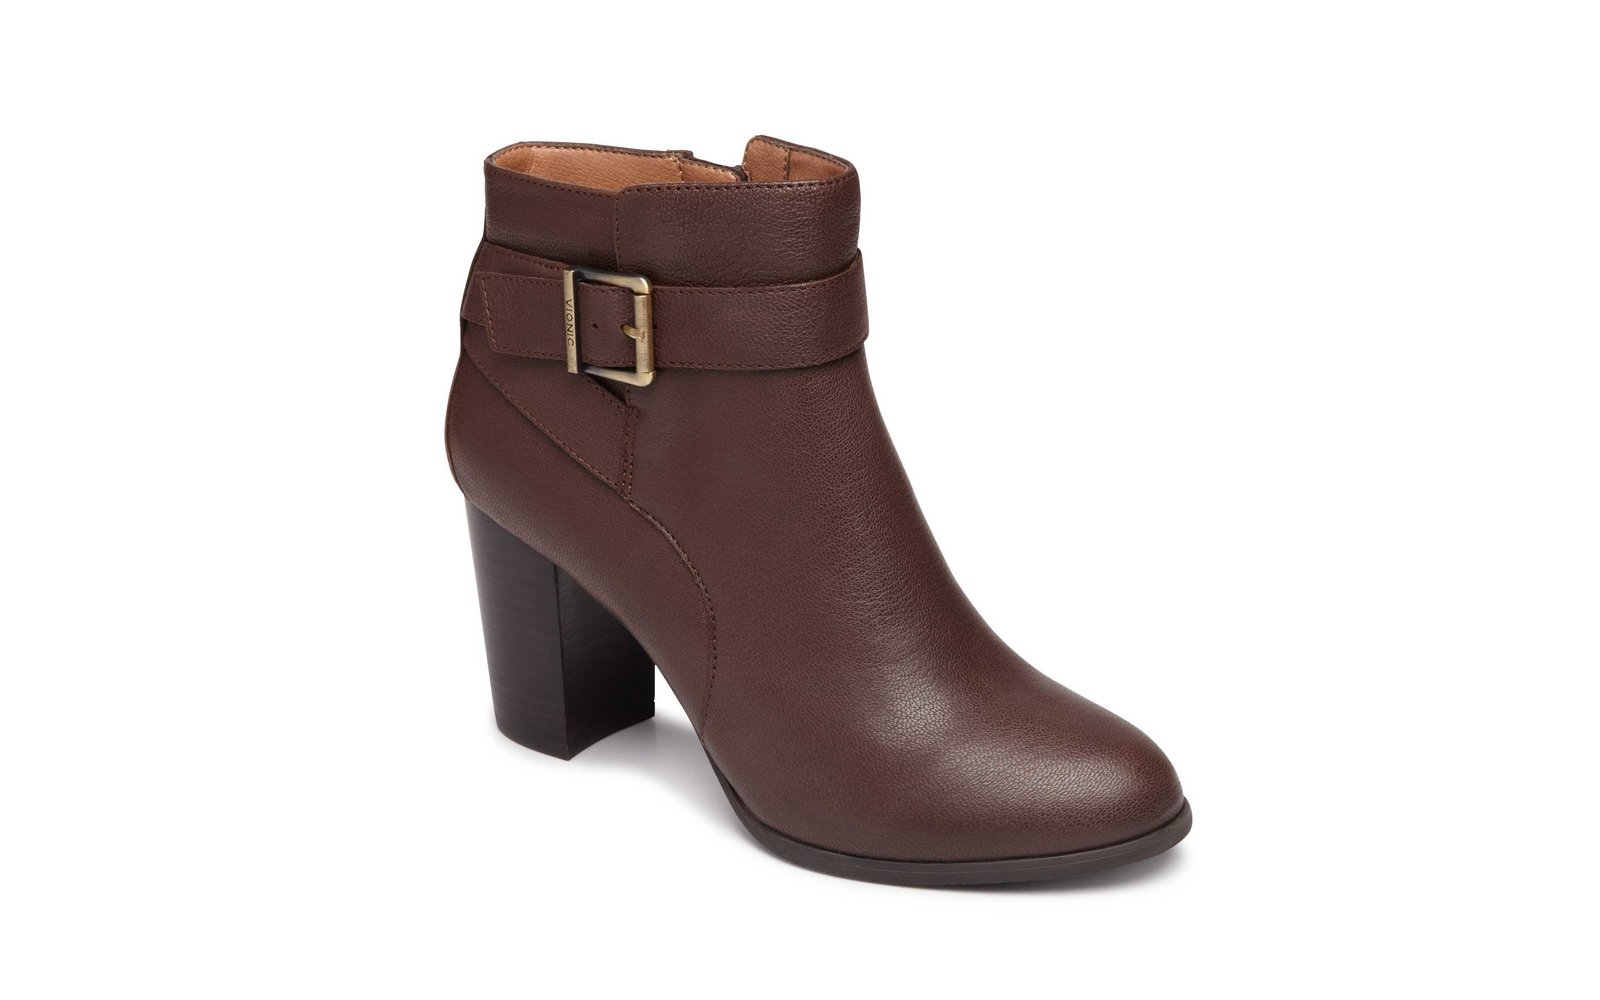 Buckled-up Ankle Boots